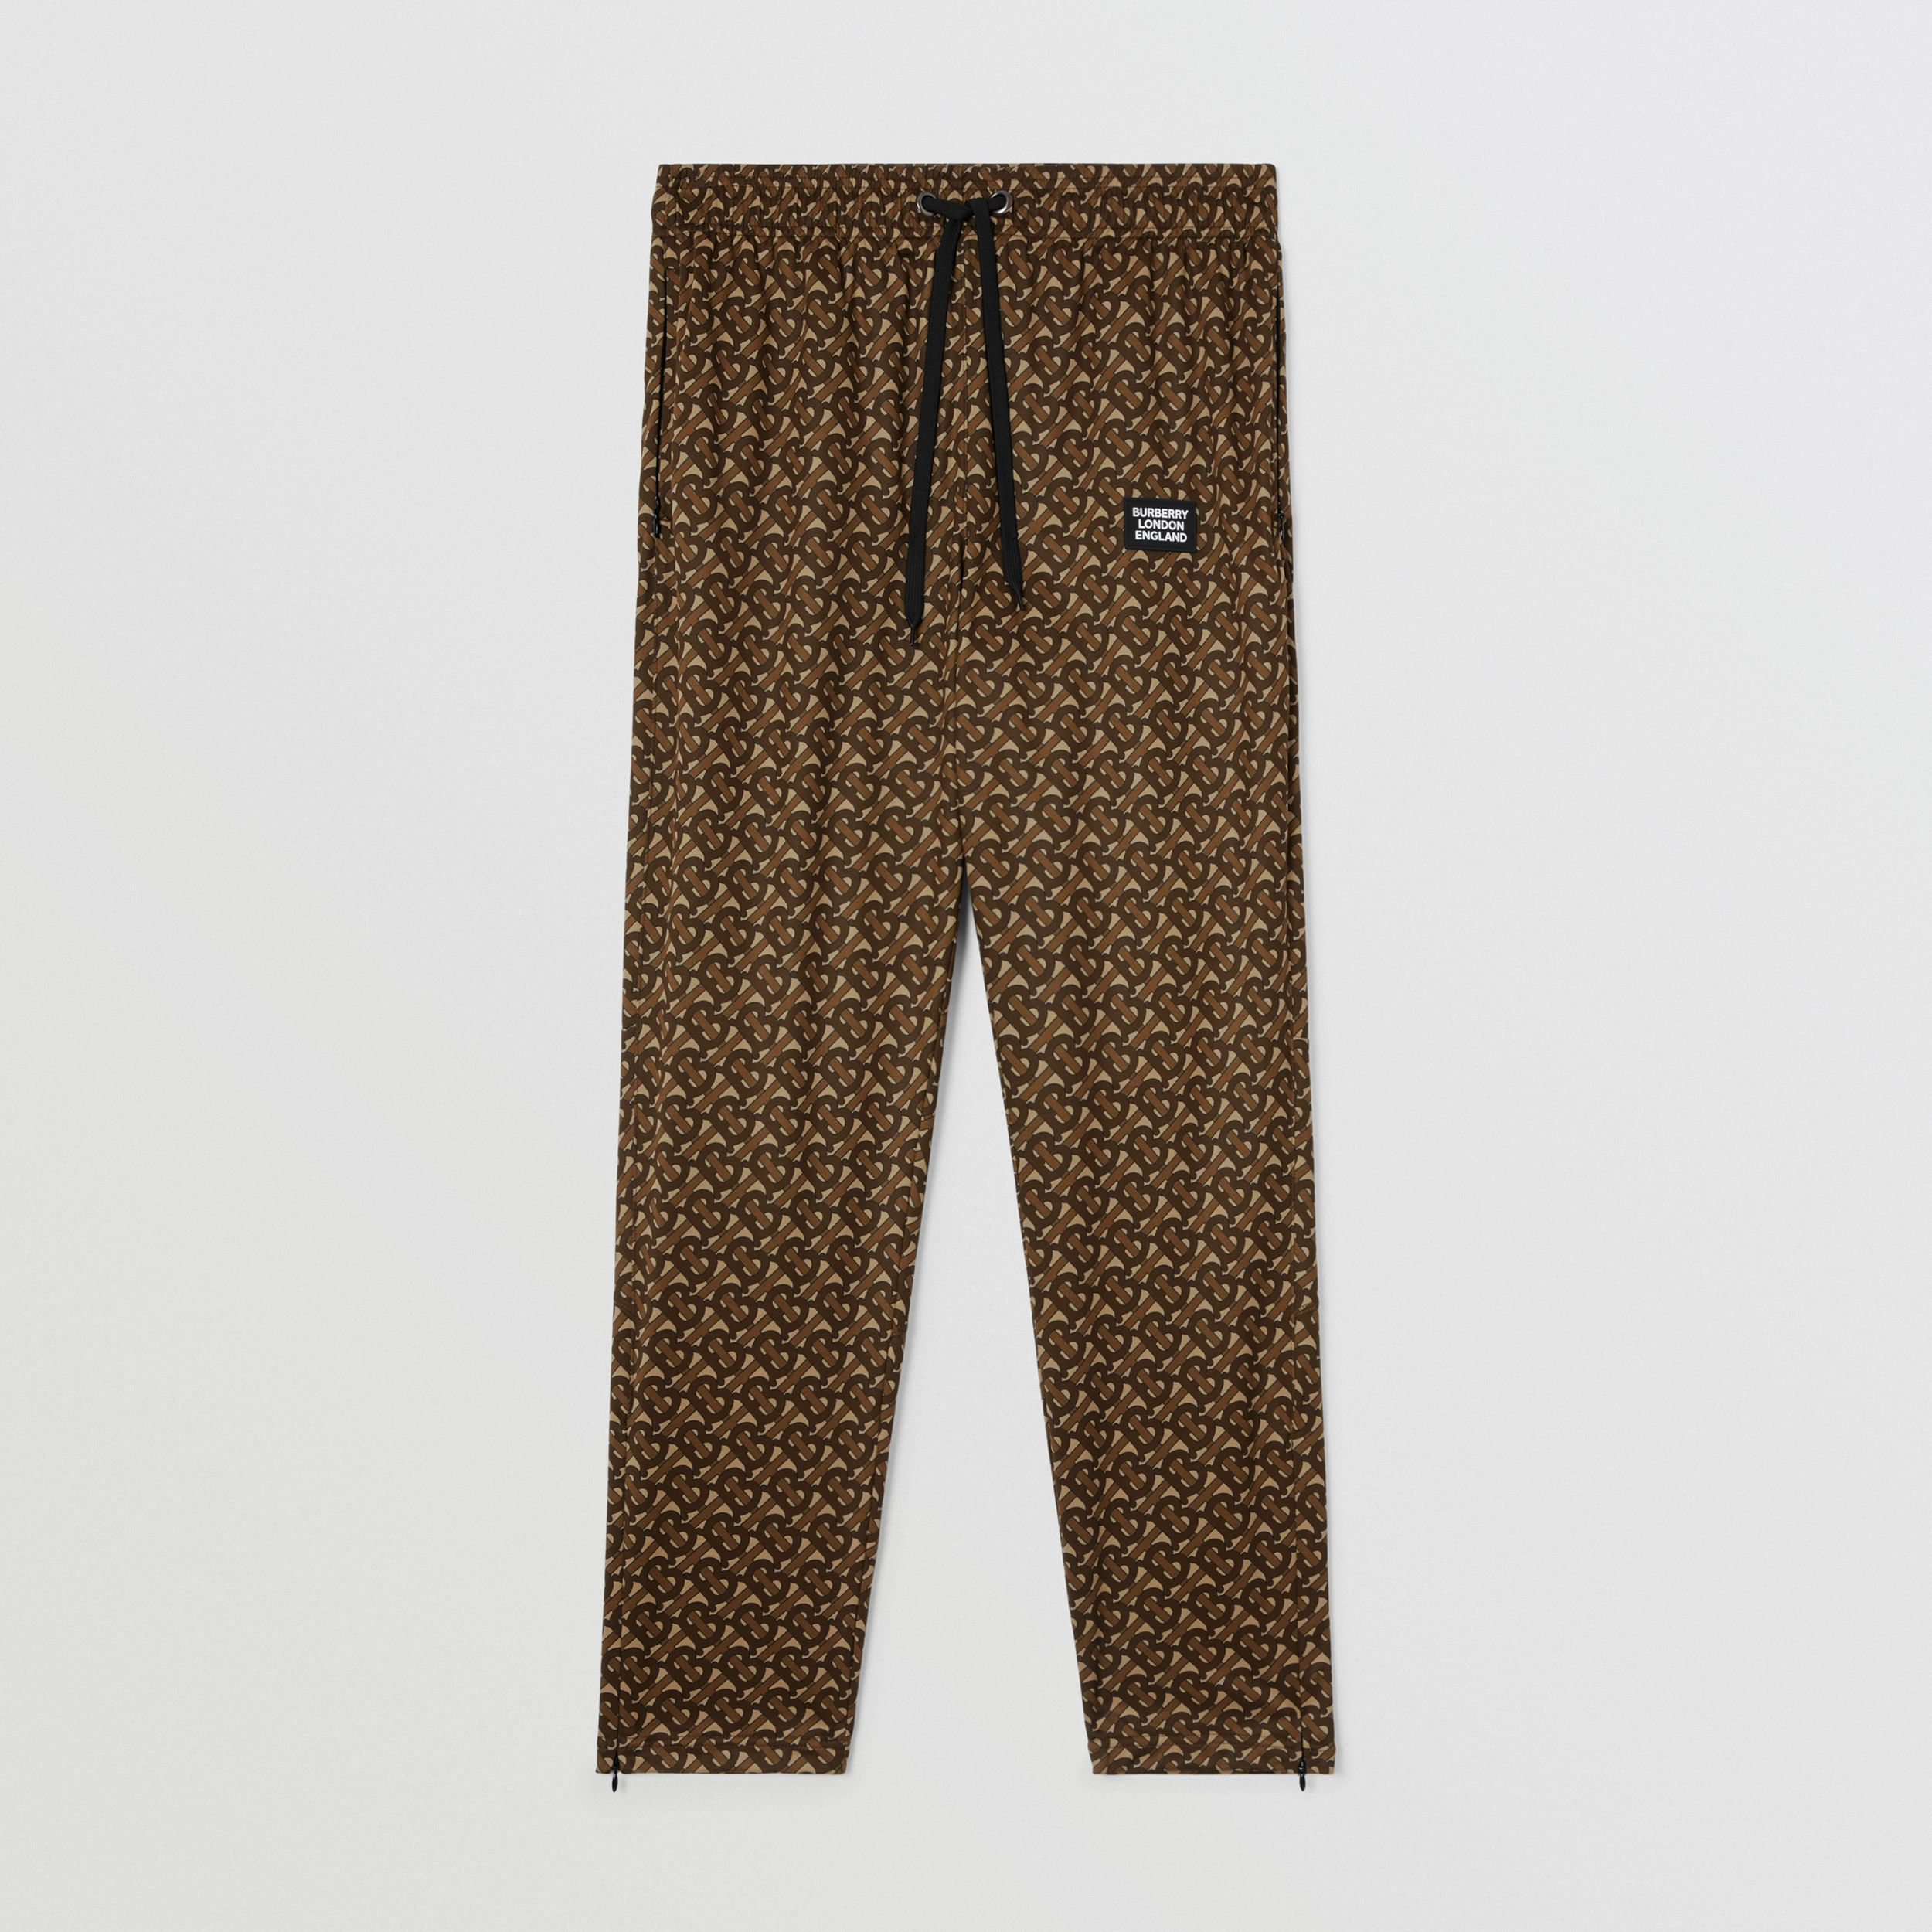 Monogram Print Technical Twill Jogging Pants in Bridle Brown - Men | Burberry Australia - 4